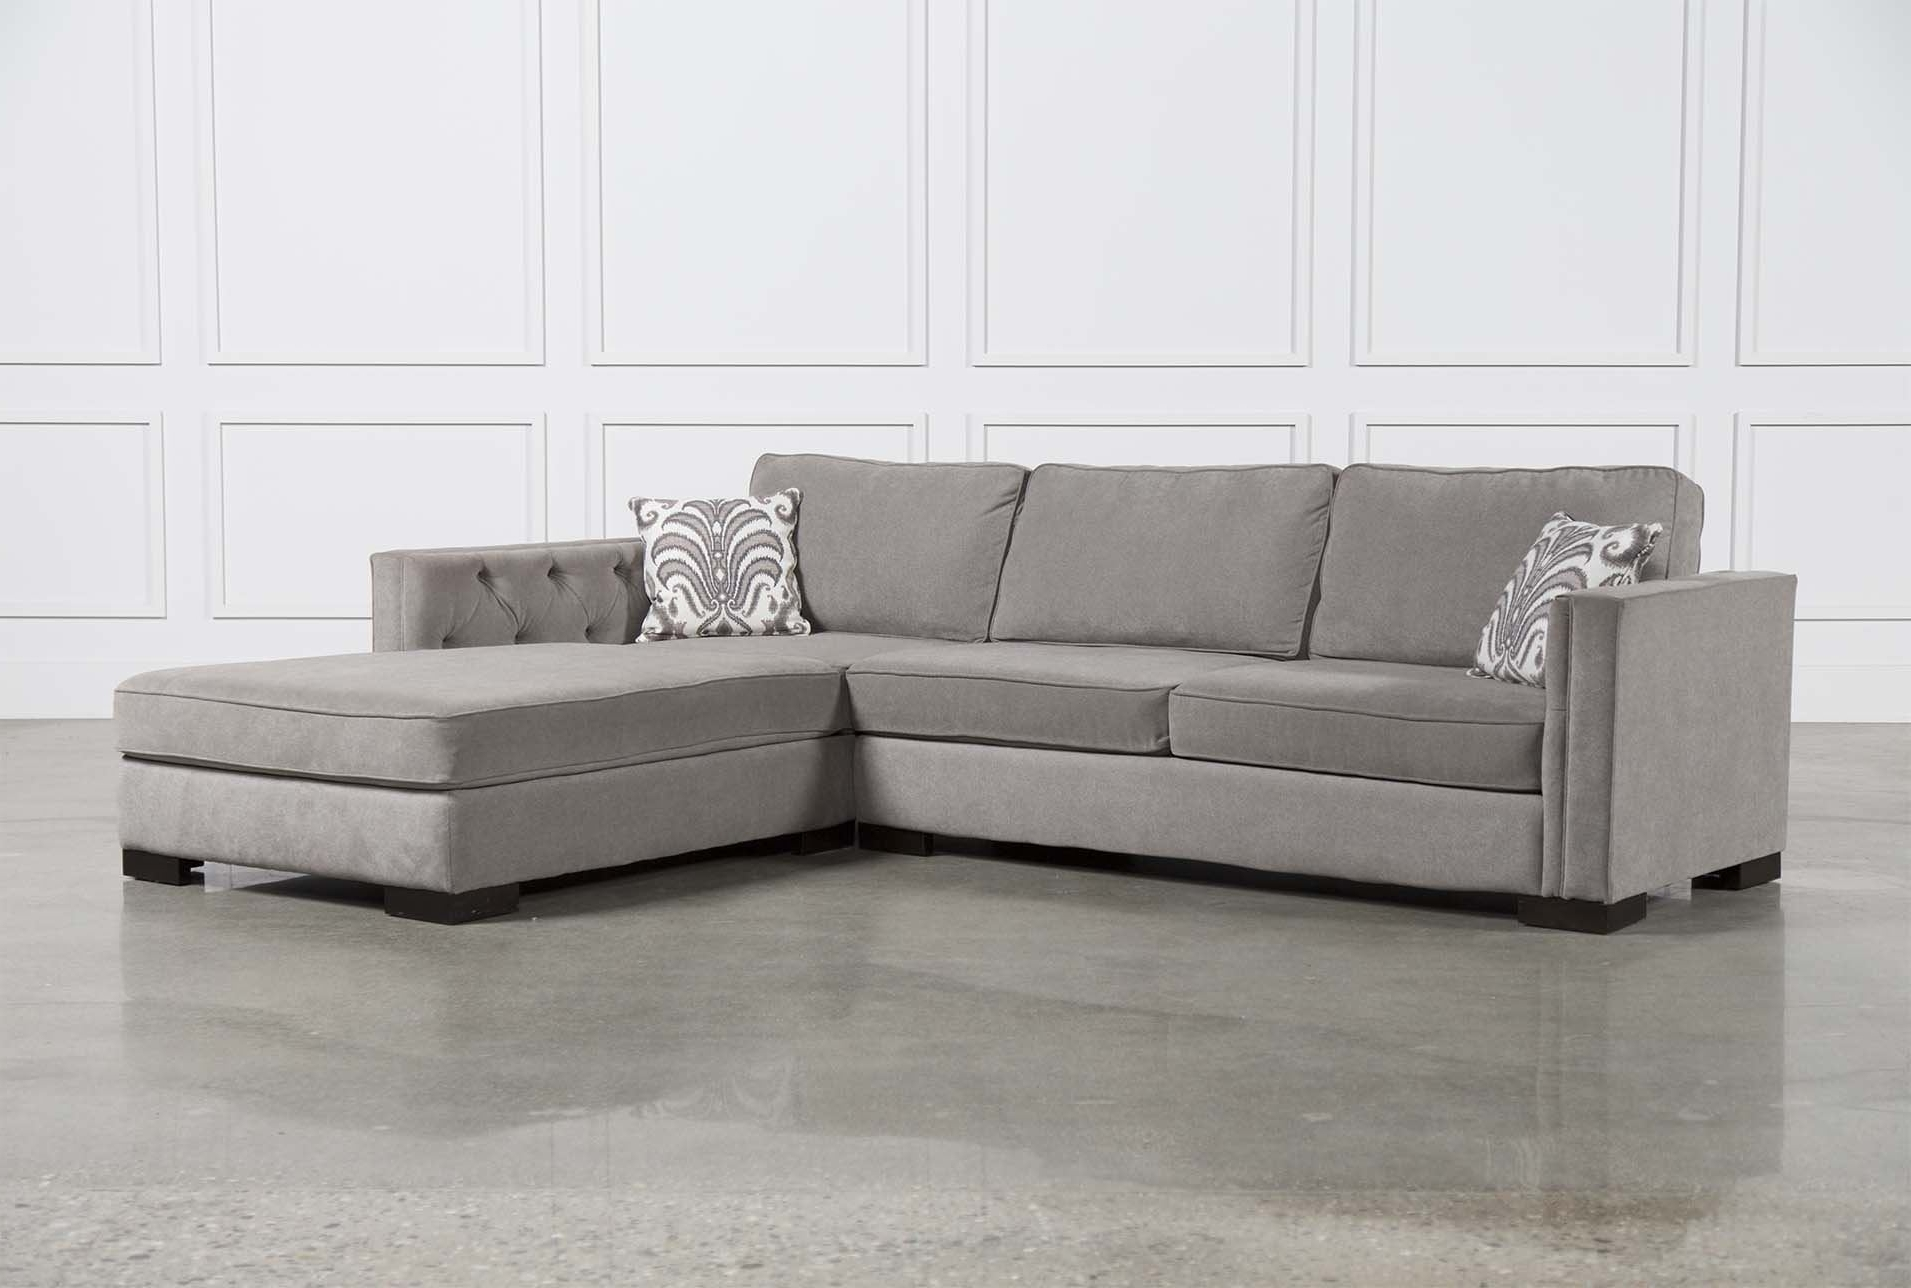 Living Spaces Sectional Sofas Intended For Favorite Furniture: Ikea Sectional Sofa Sleeper (View 9 of 20)